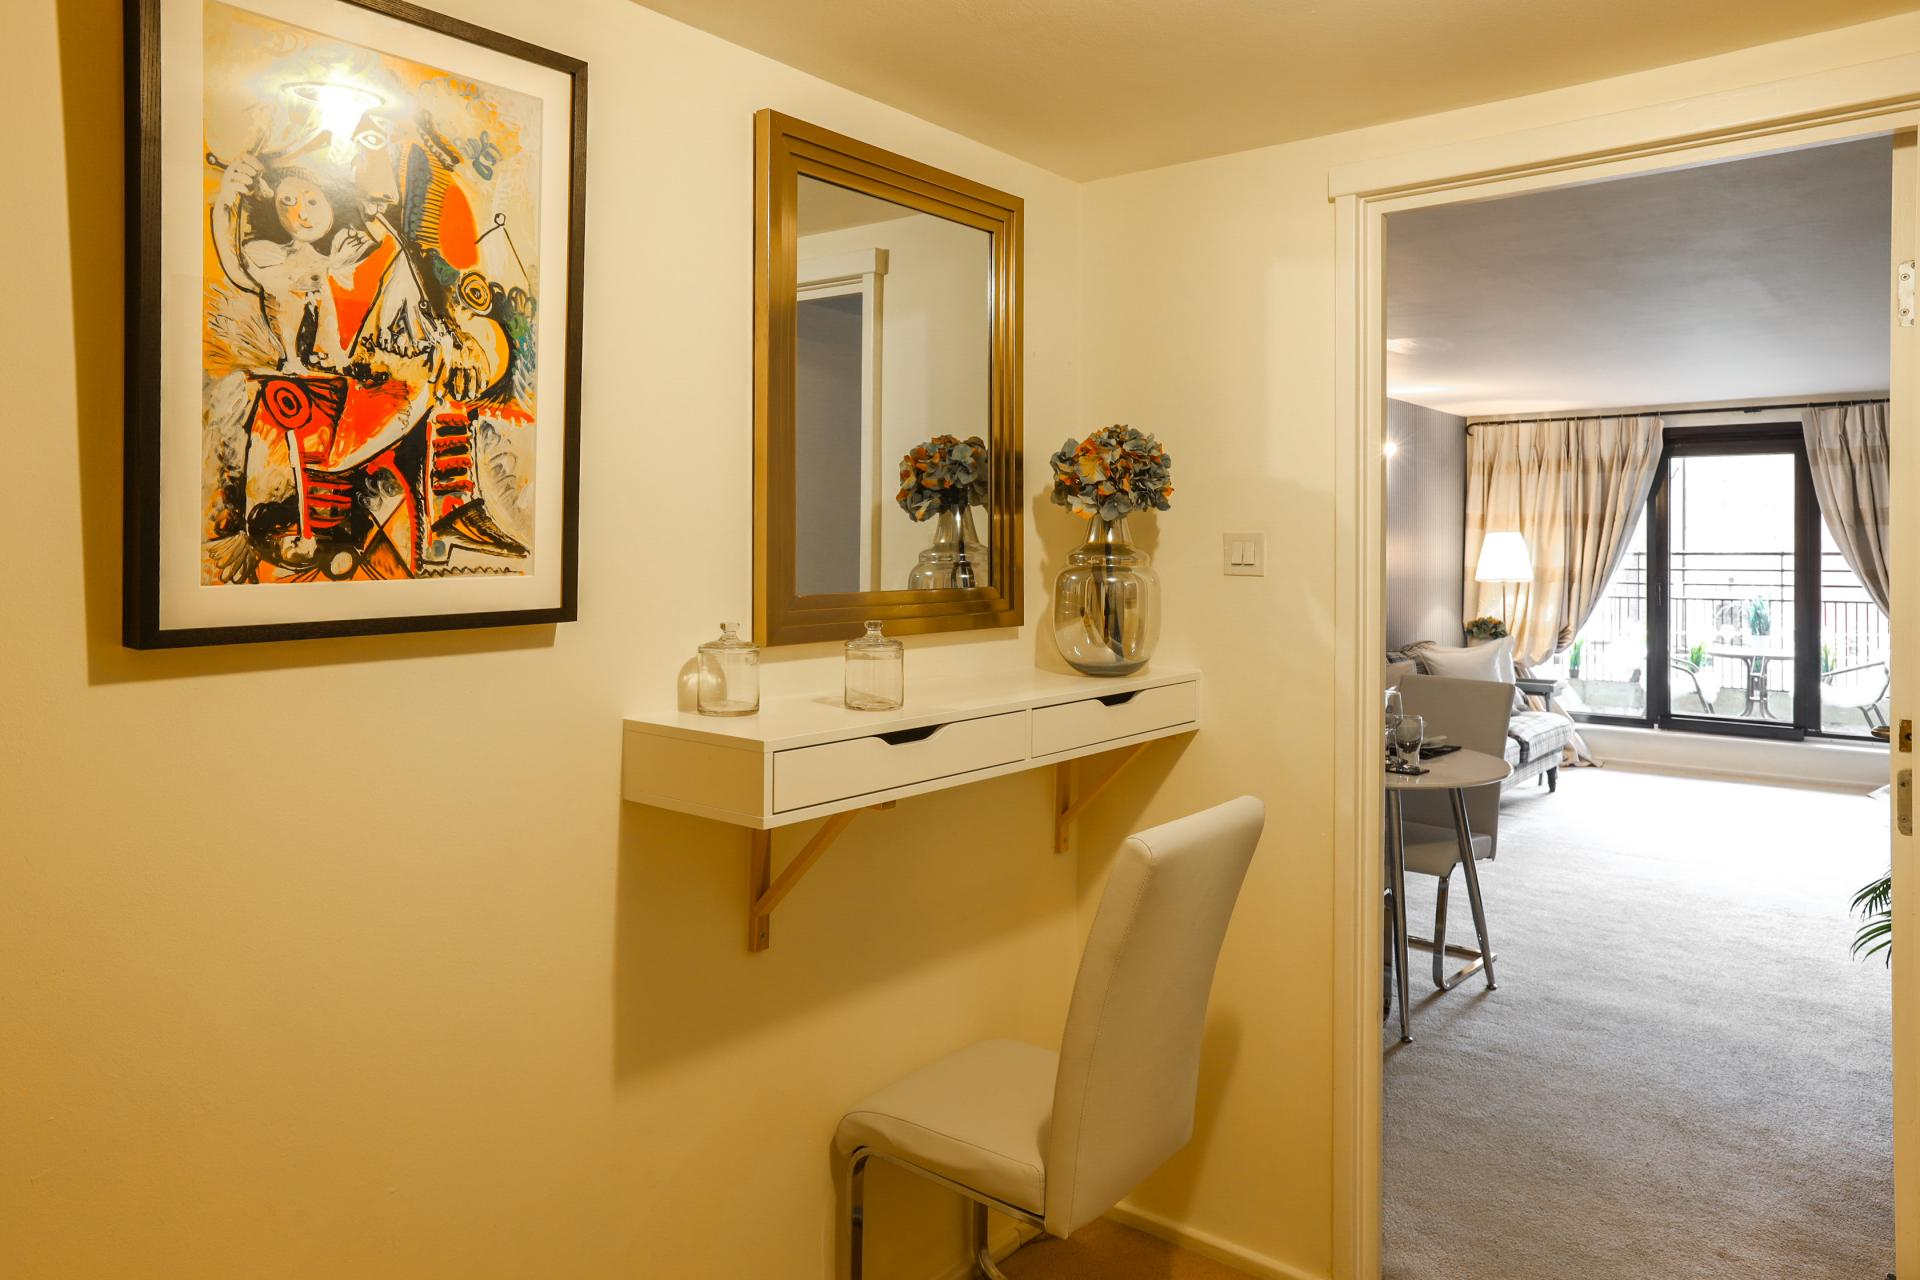 Dressing table at 116 Point West Apartments, South Kensington, London